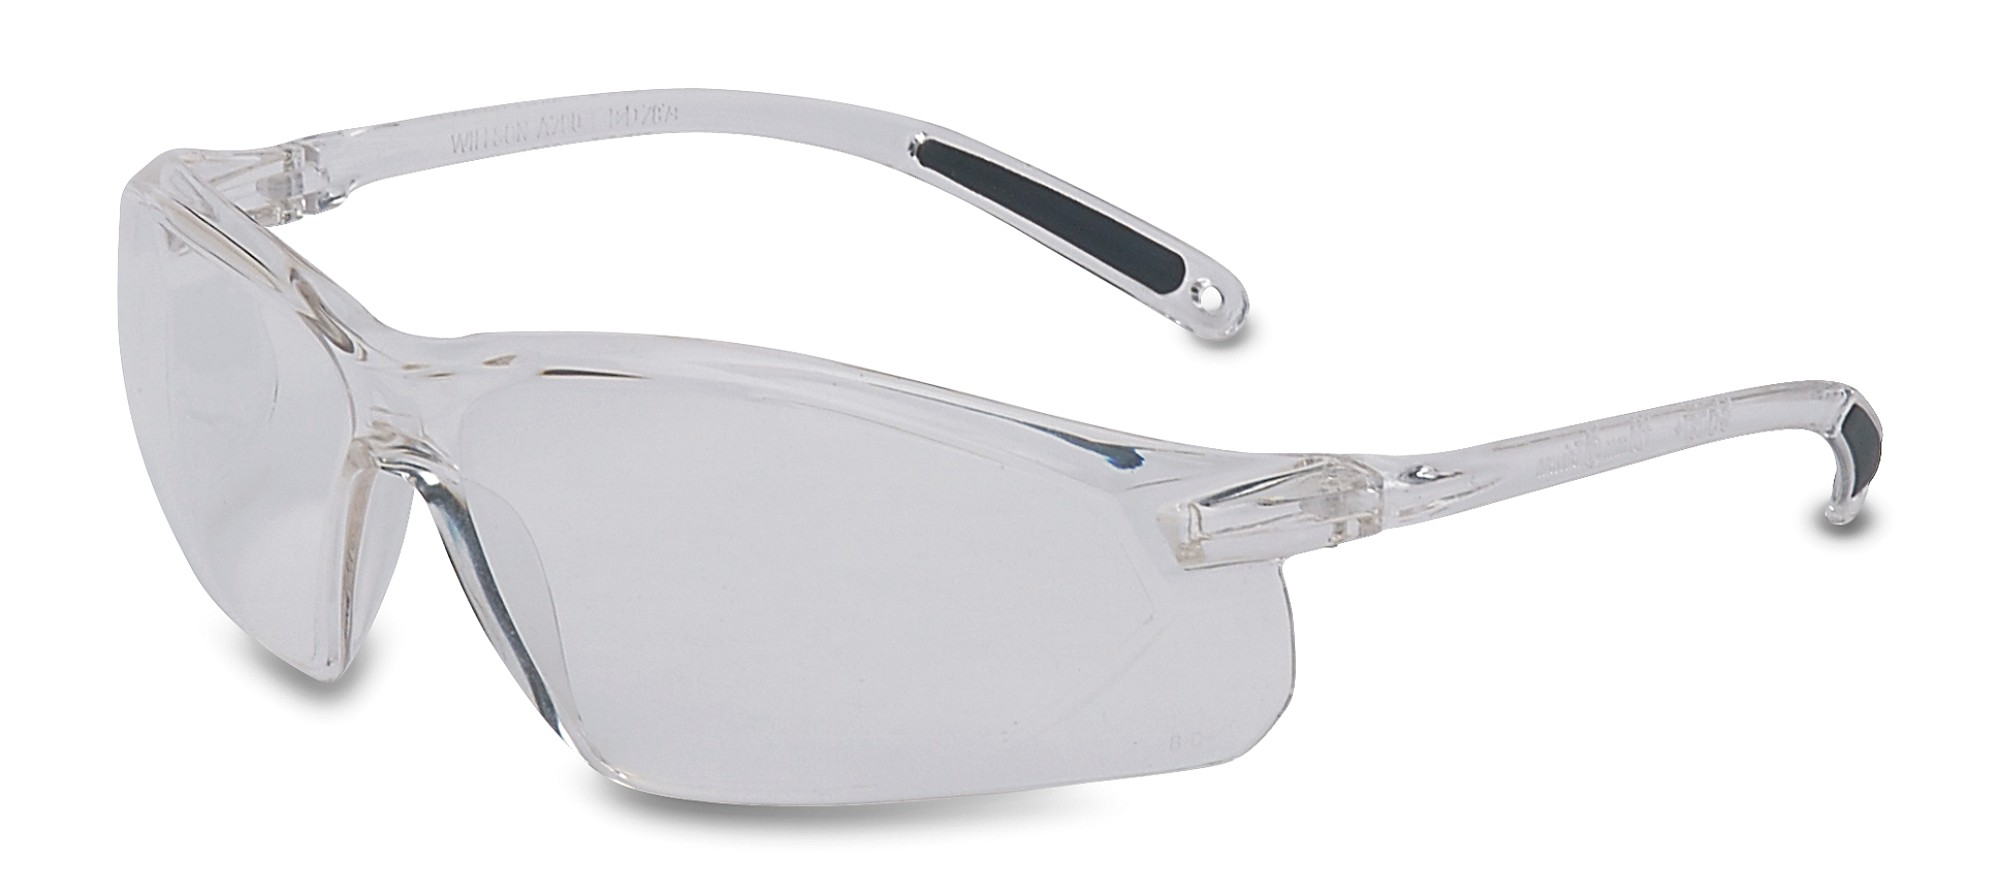 Honeywell A700 Safety Glasses Anti-Scratch Lens